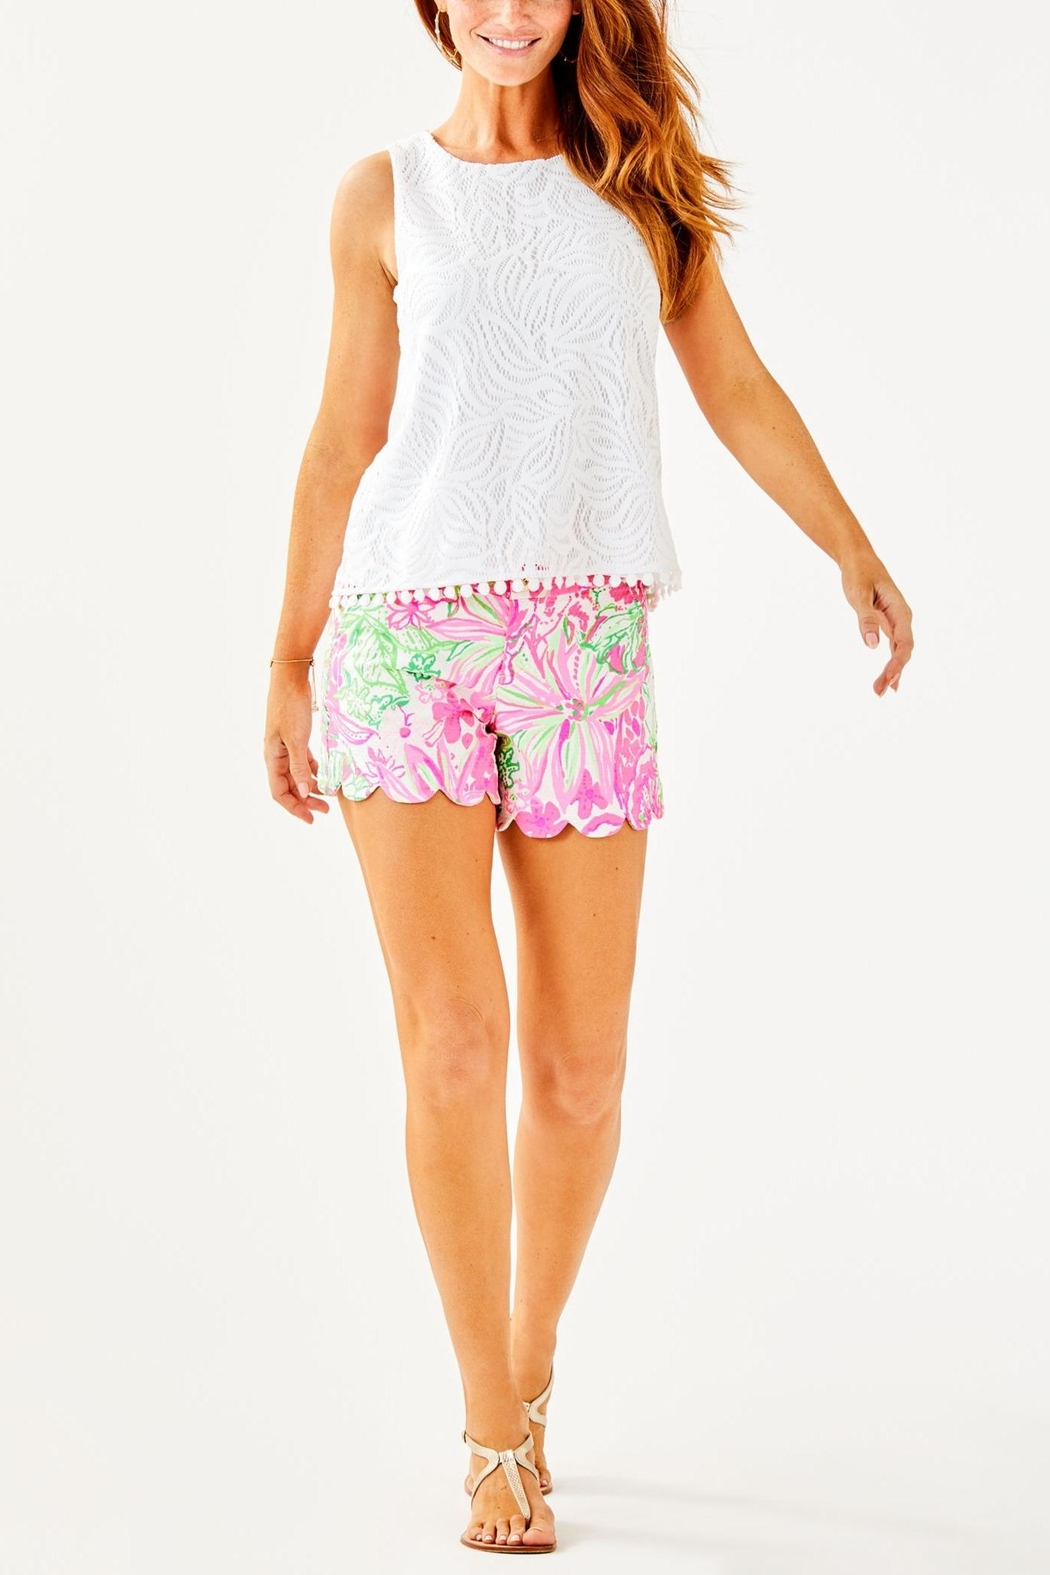 Lilly Pulitzer Maybelle Top - Side Cropped Image